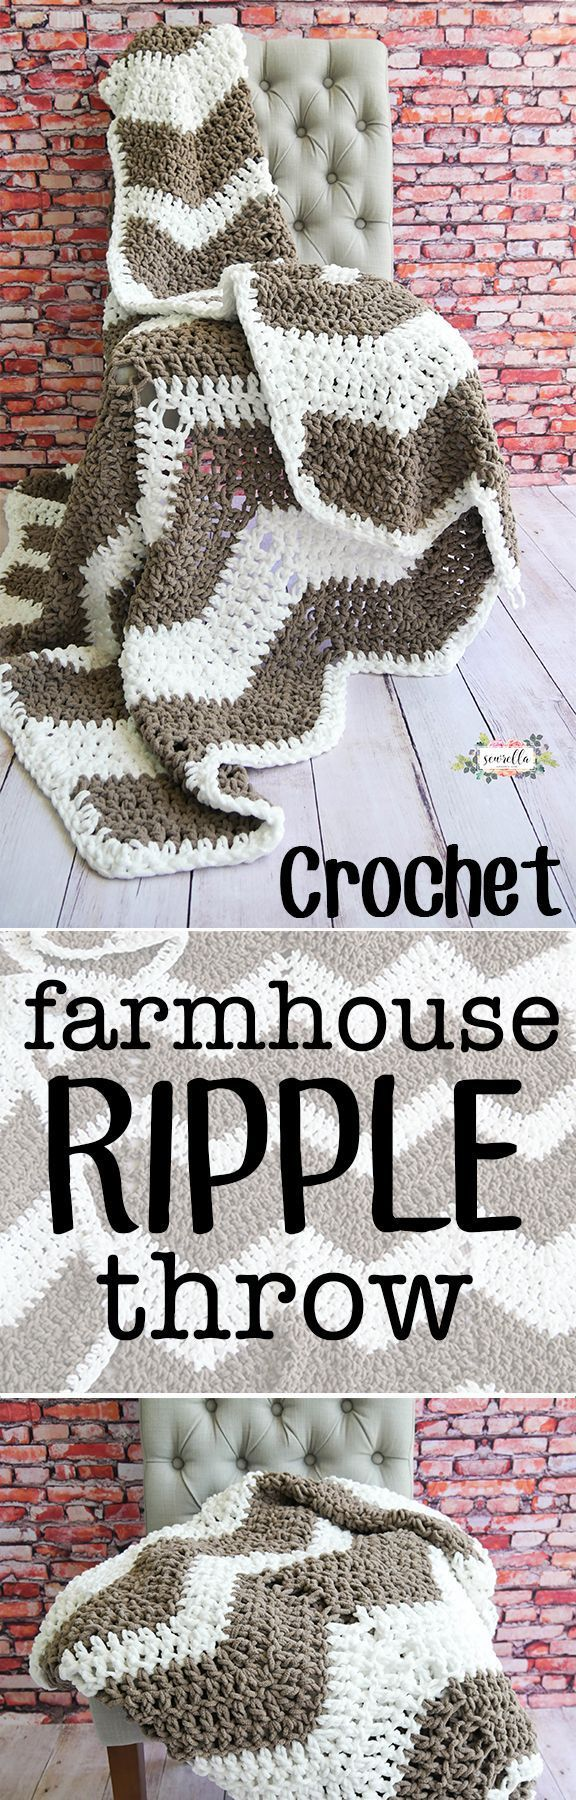 Learn to crochet this easy farmhouse ripple throw blanket afghan ...